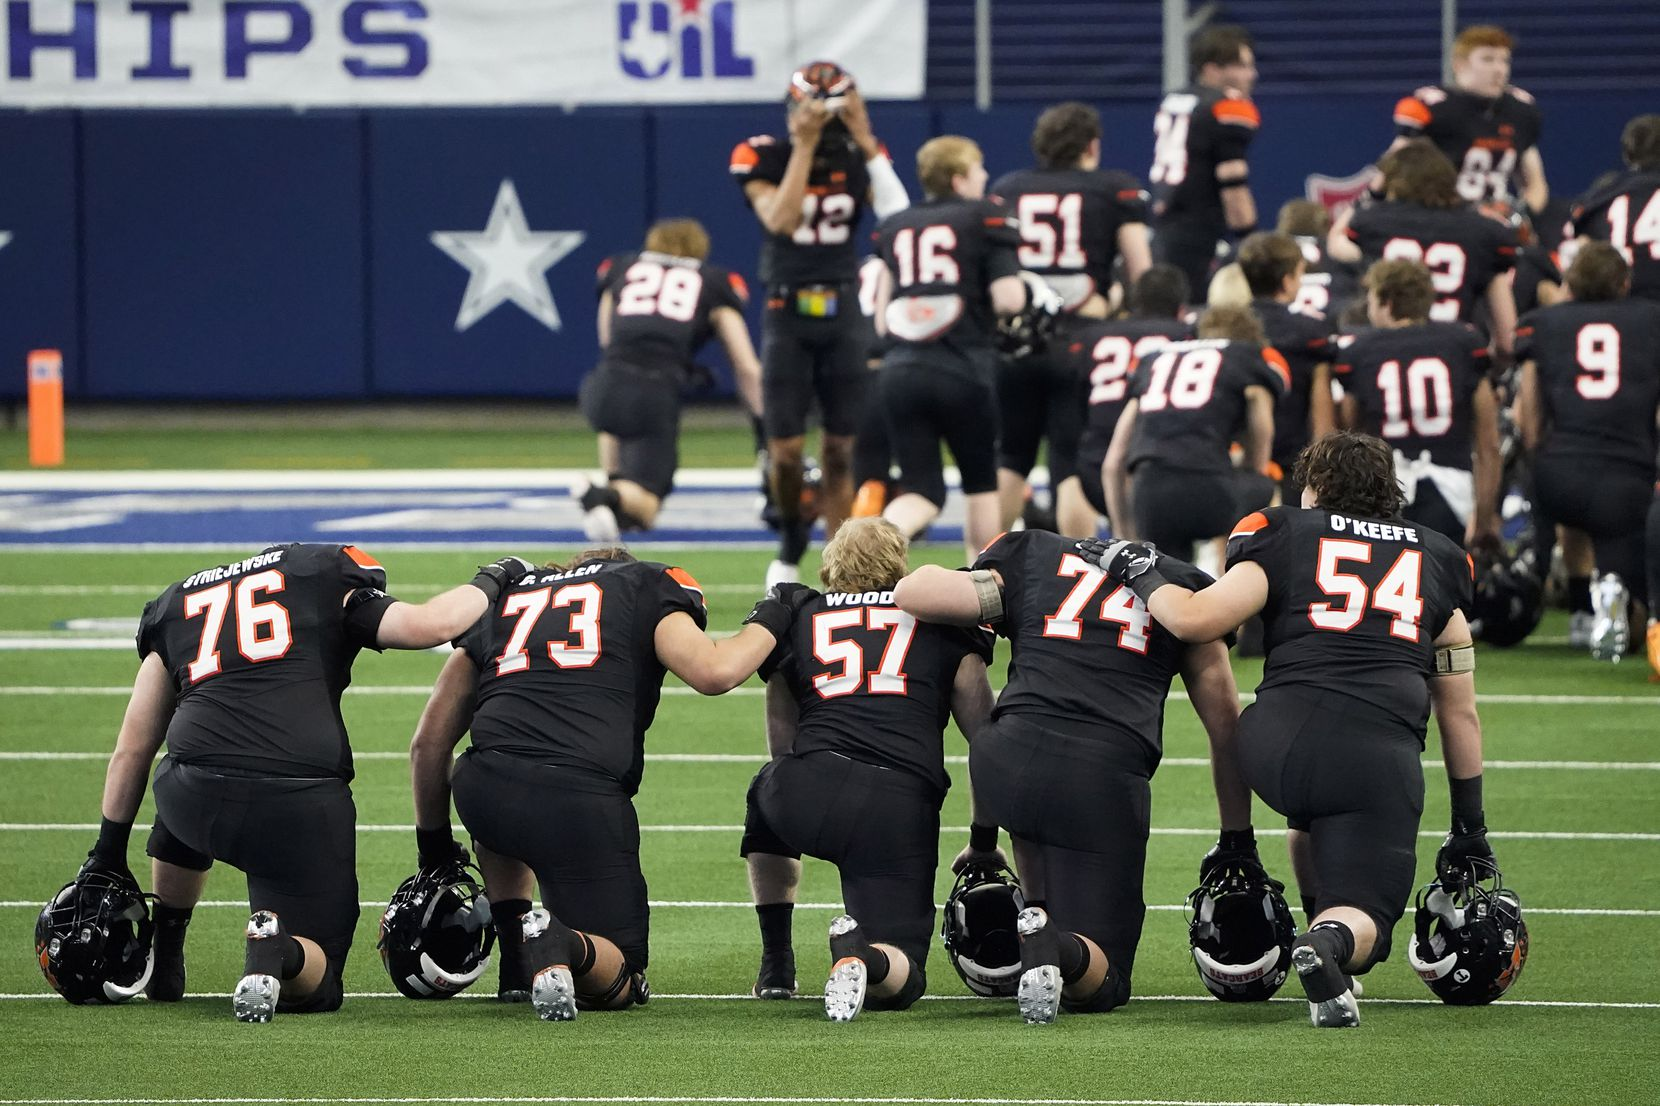 Aledo players kneel in prayer before the first half of the Class 5A Division II state football championship game against Crosby at AT&T Stadium on Friday, Jan. 15, 2021, in Arlington. (Smiley N. Pool/The Dallas Morning News)